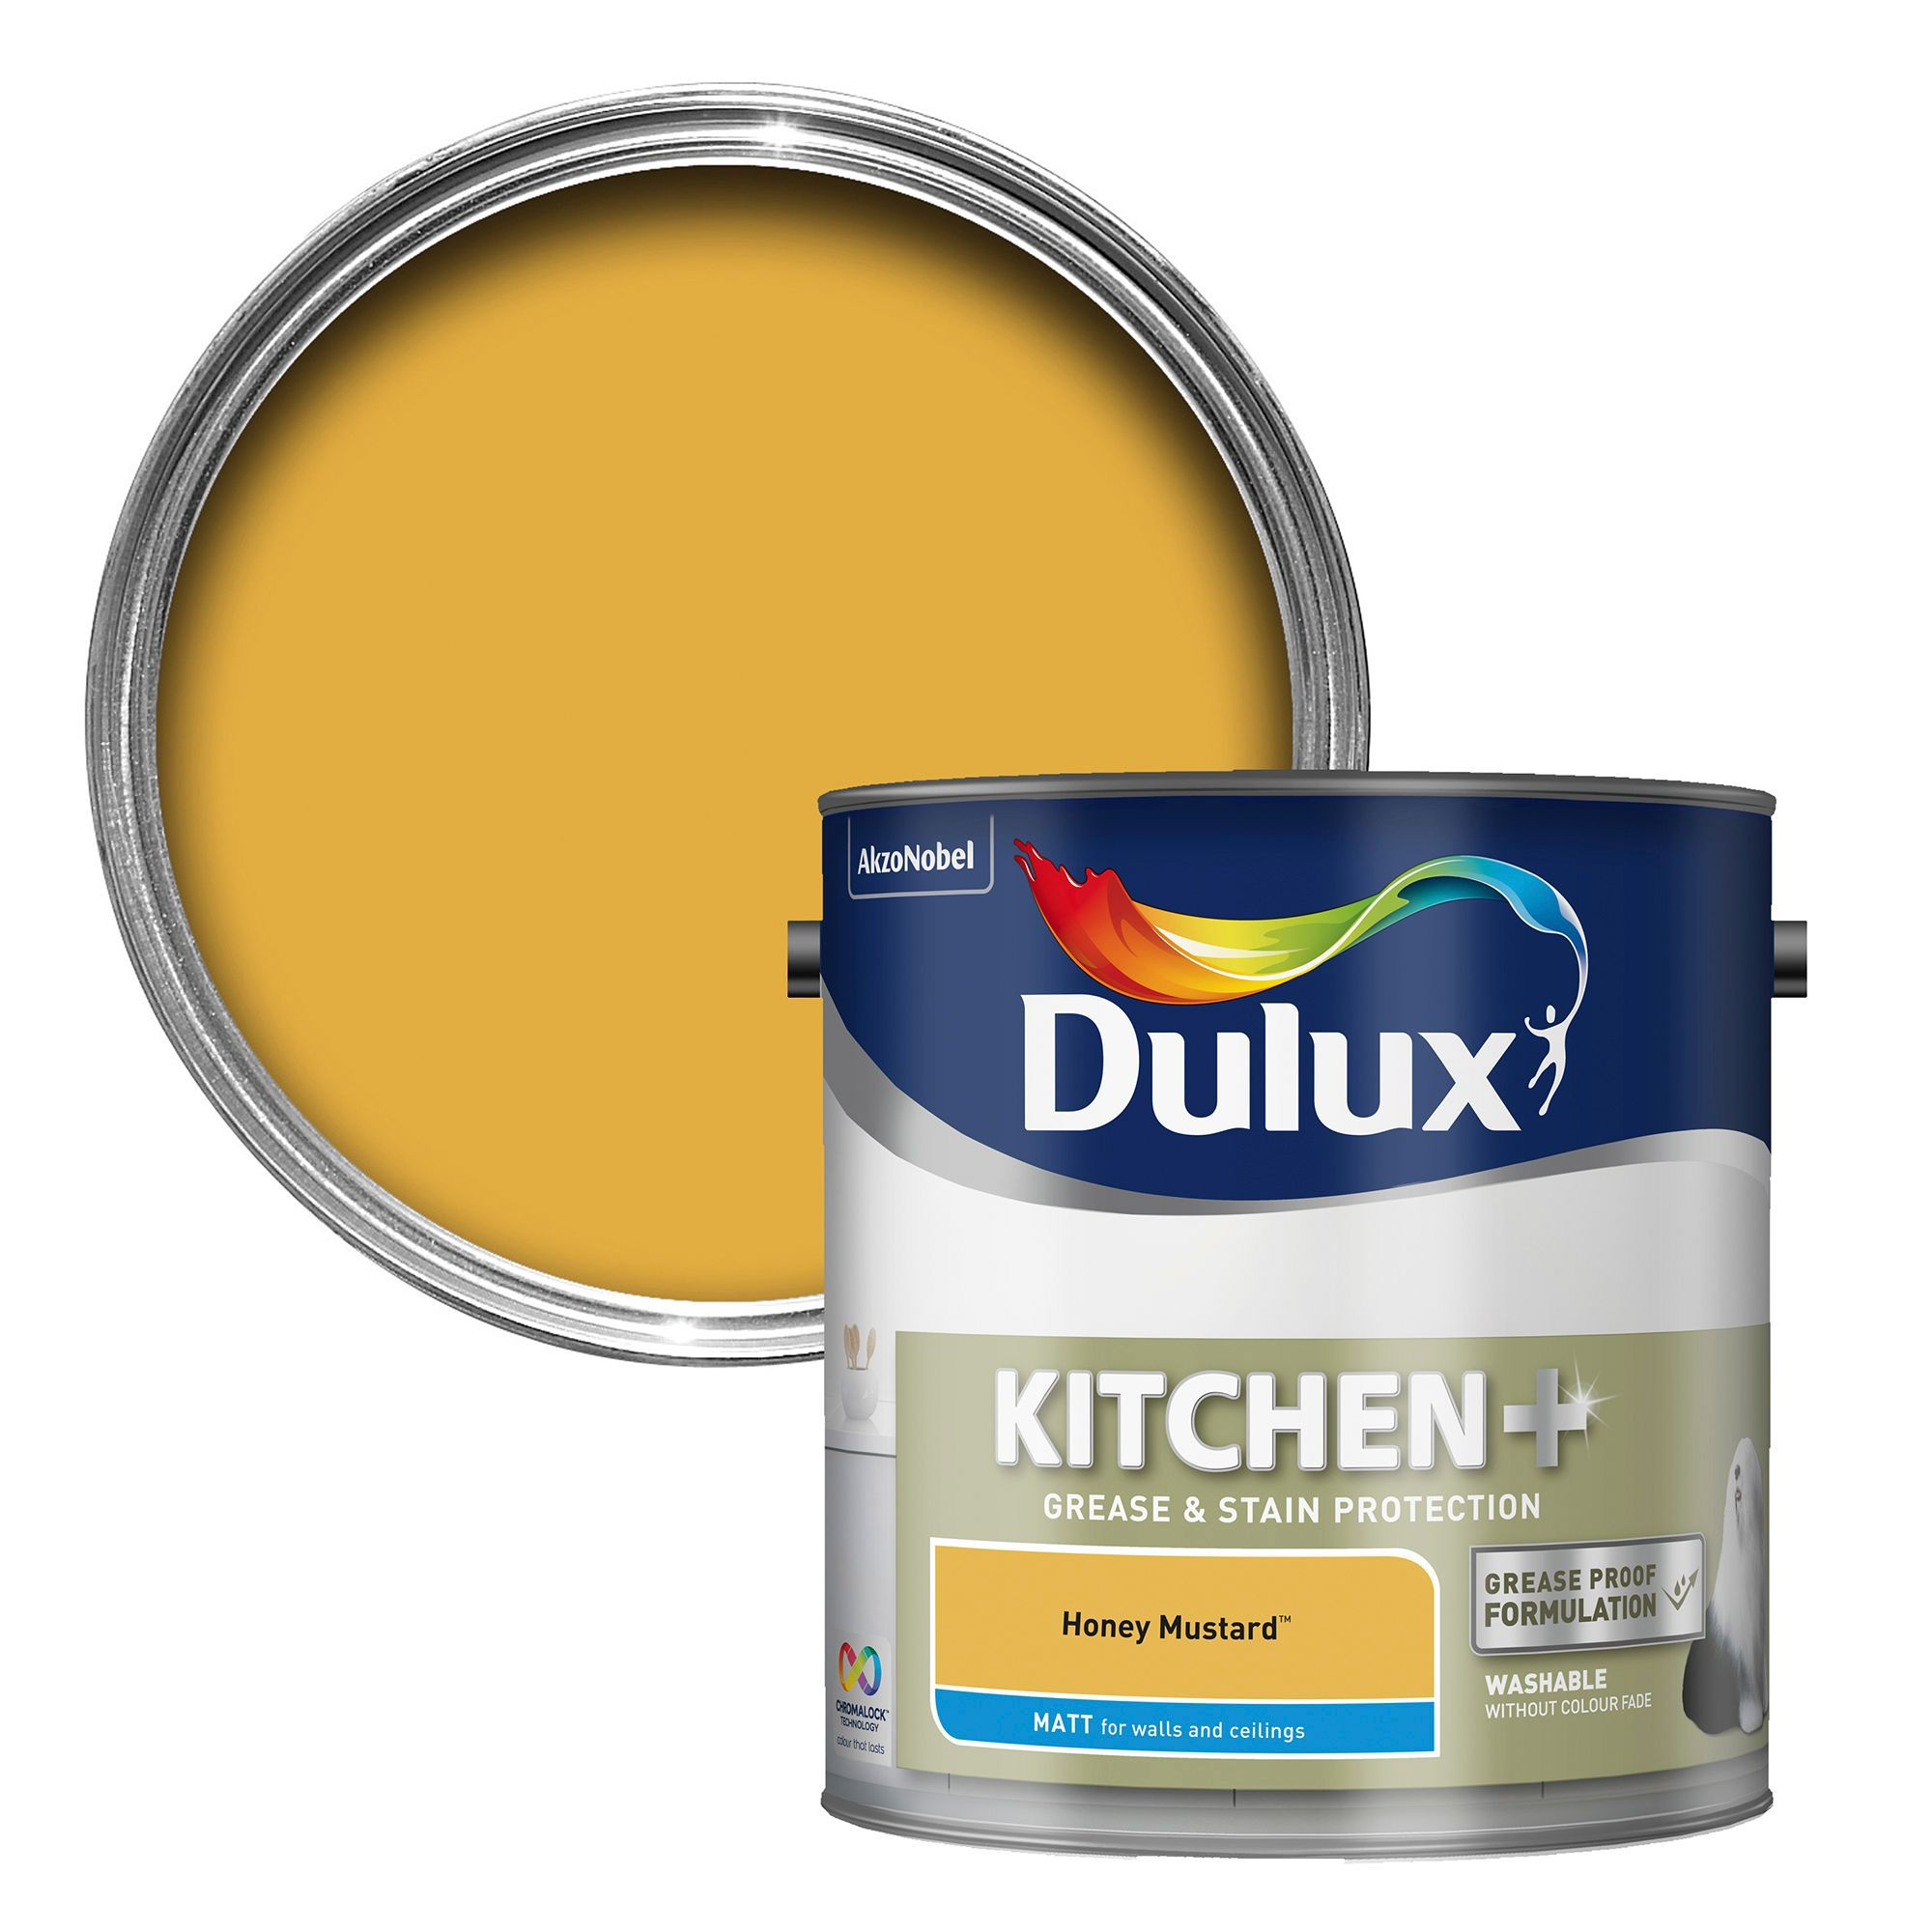 dulux kitchen honey mustard matt emulsion paint 2 5l. Black Bedroom Furniture Sets. Home Design Ideas